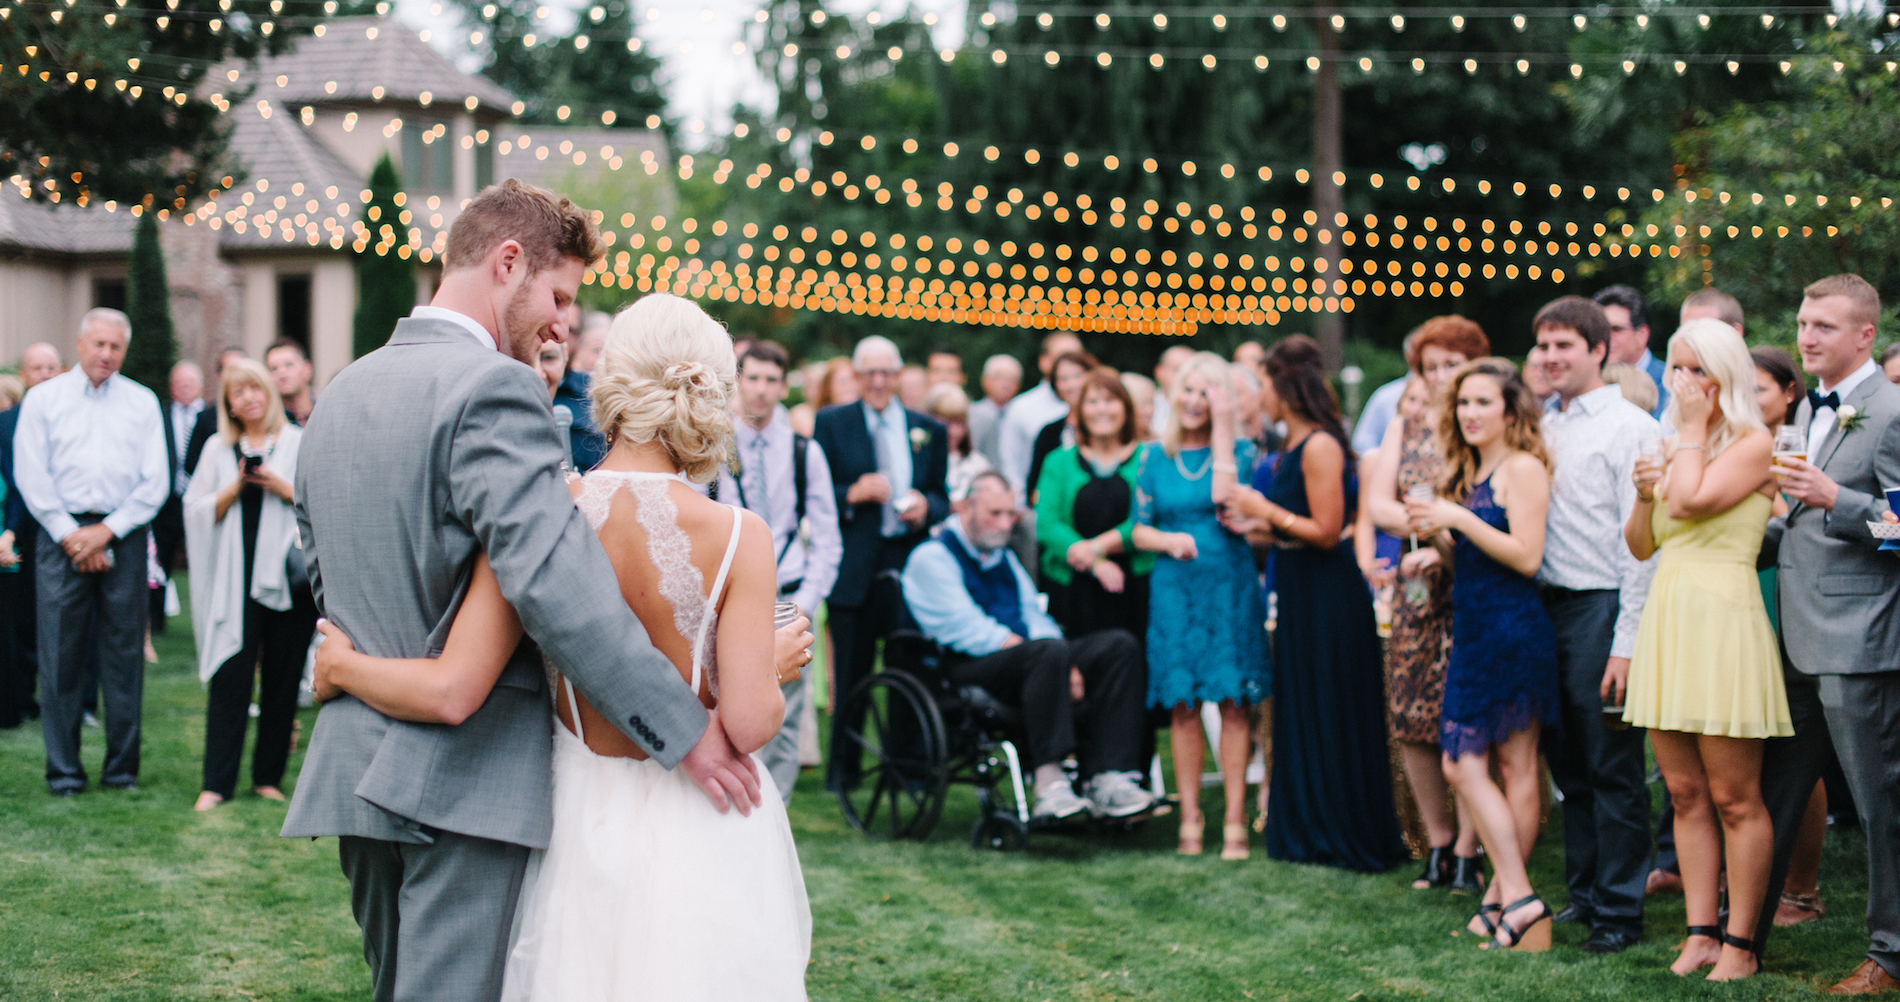 6 hour wedding photography timeline